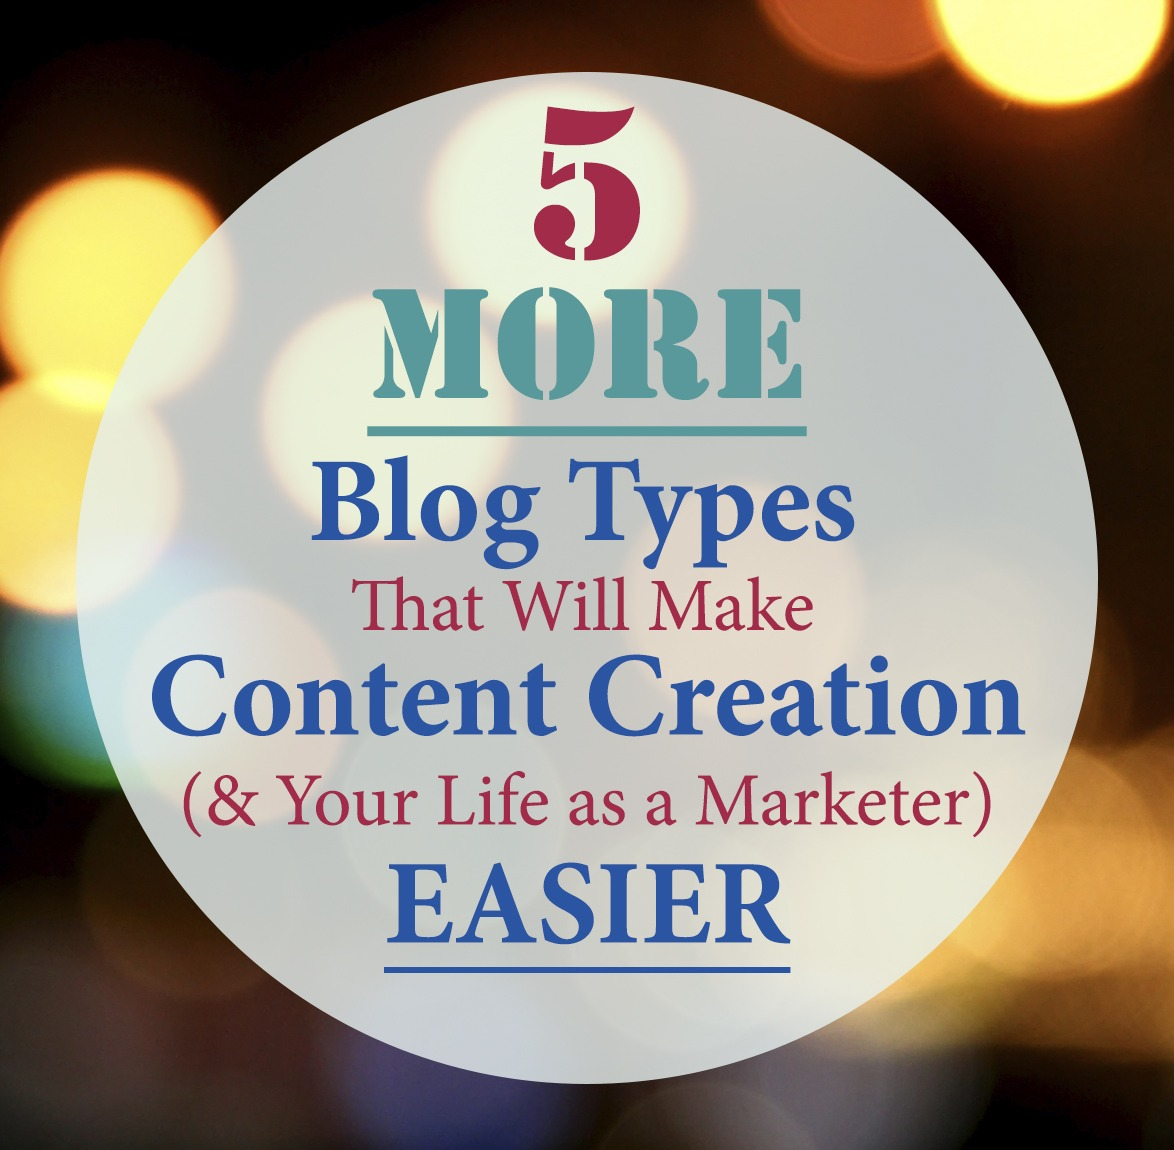 5 MORE Blog Types That Will Make Content Creation Easier